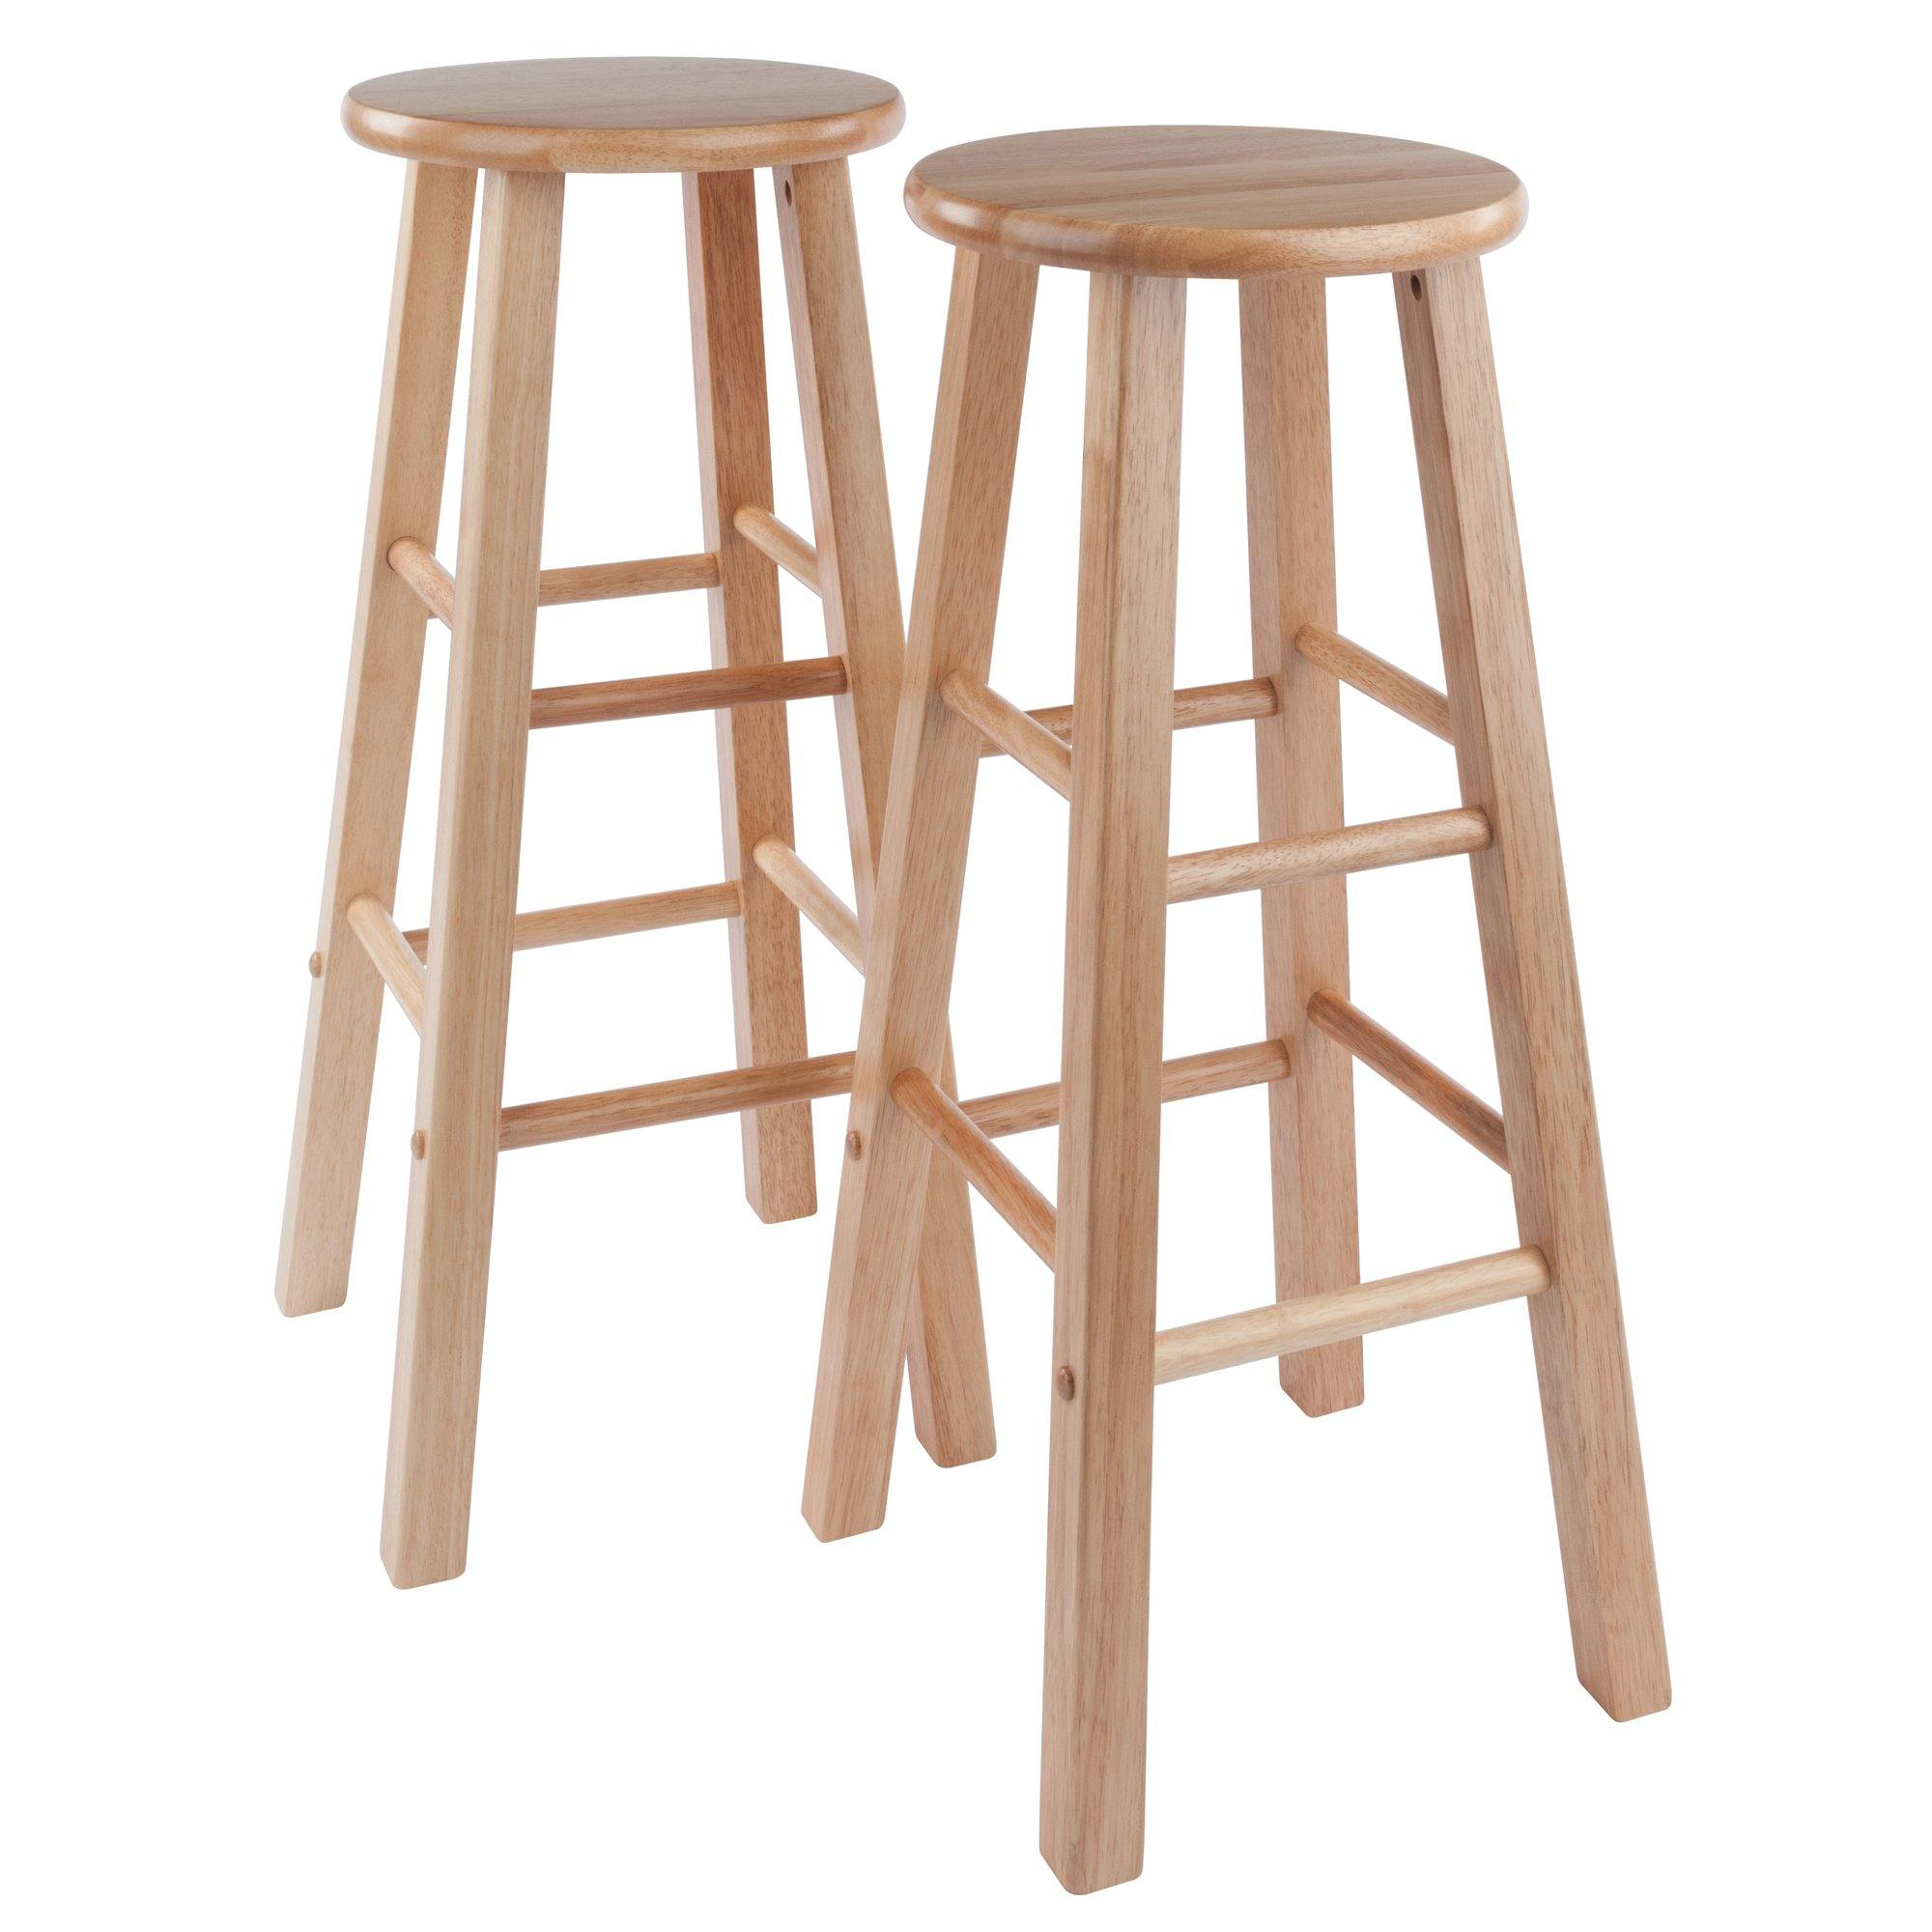 Element Bar Stools, 2-Pc Set, Natural - My USA Furniture